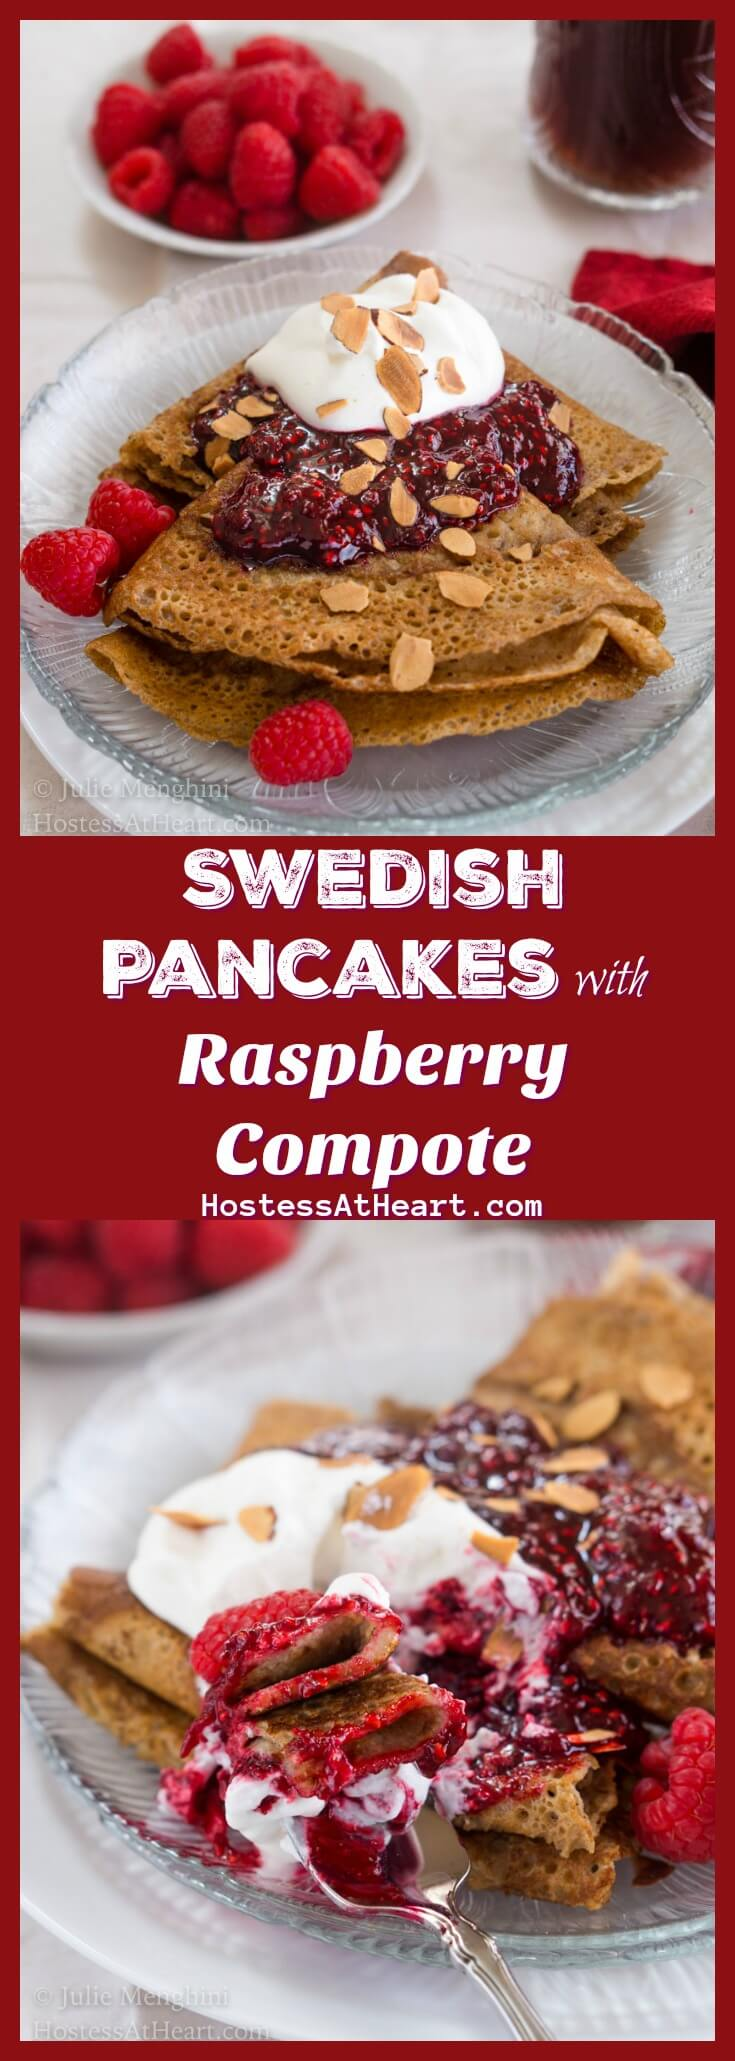 Swedish Pancakes with Raspberry Compote is a little taste of decadence with a side of amazing.  They're the perfect brunch or breakfast when you're looking for that wow factor | HostessAtHeart.com #pancake #breakfast #brunch #homemade